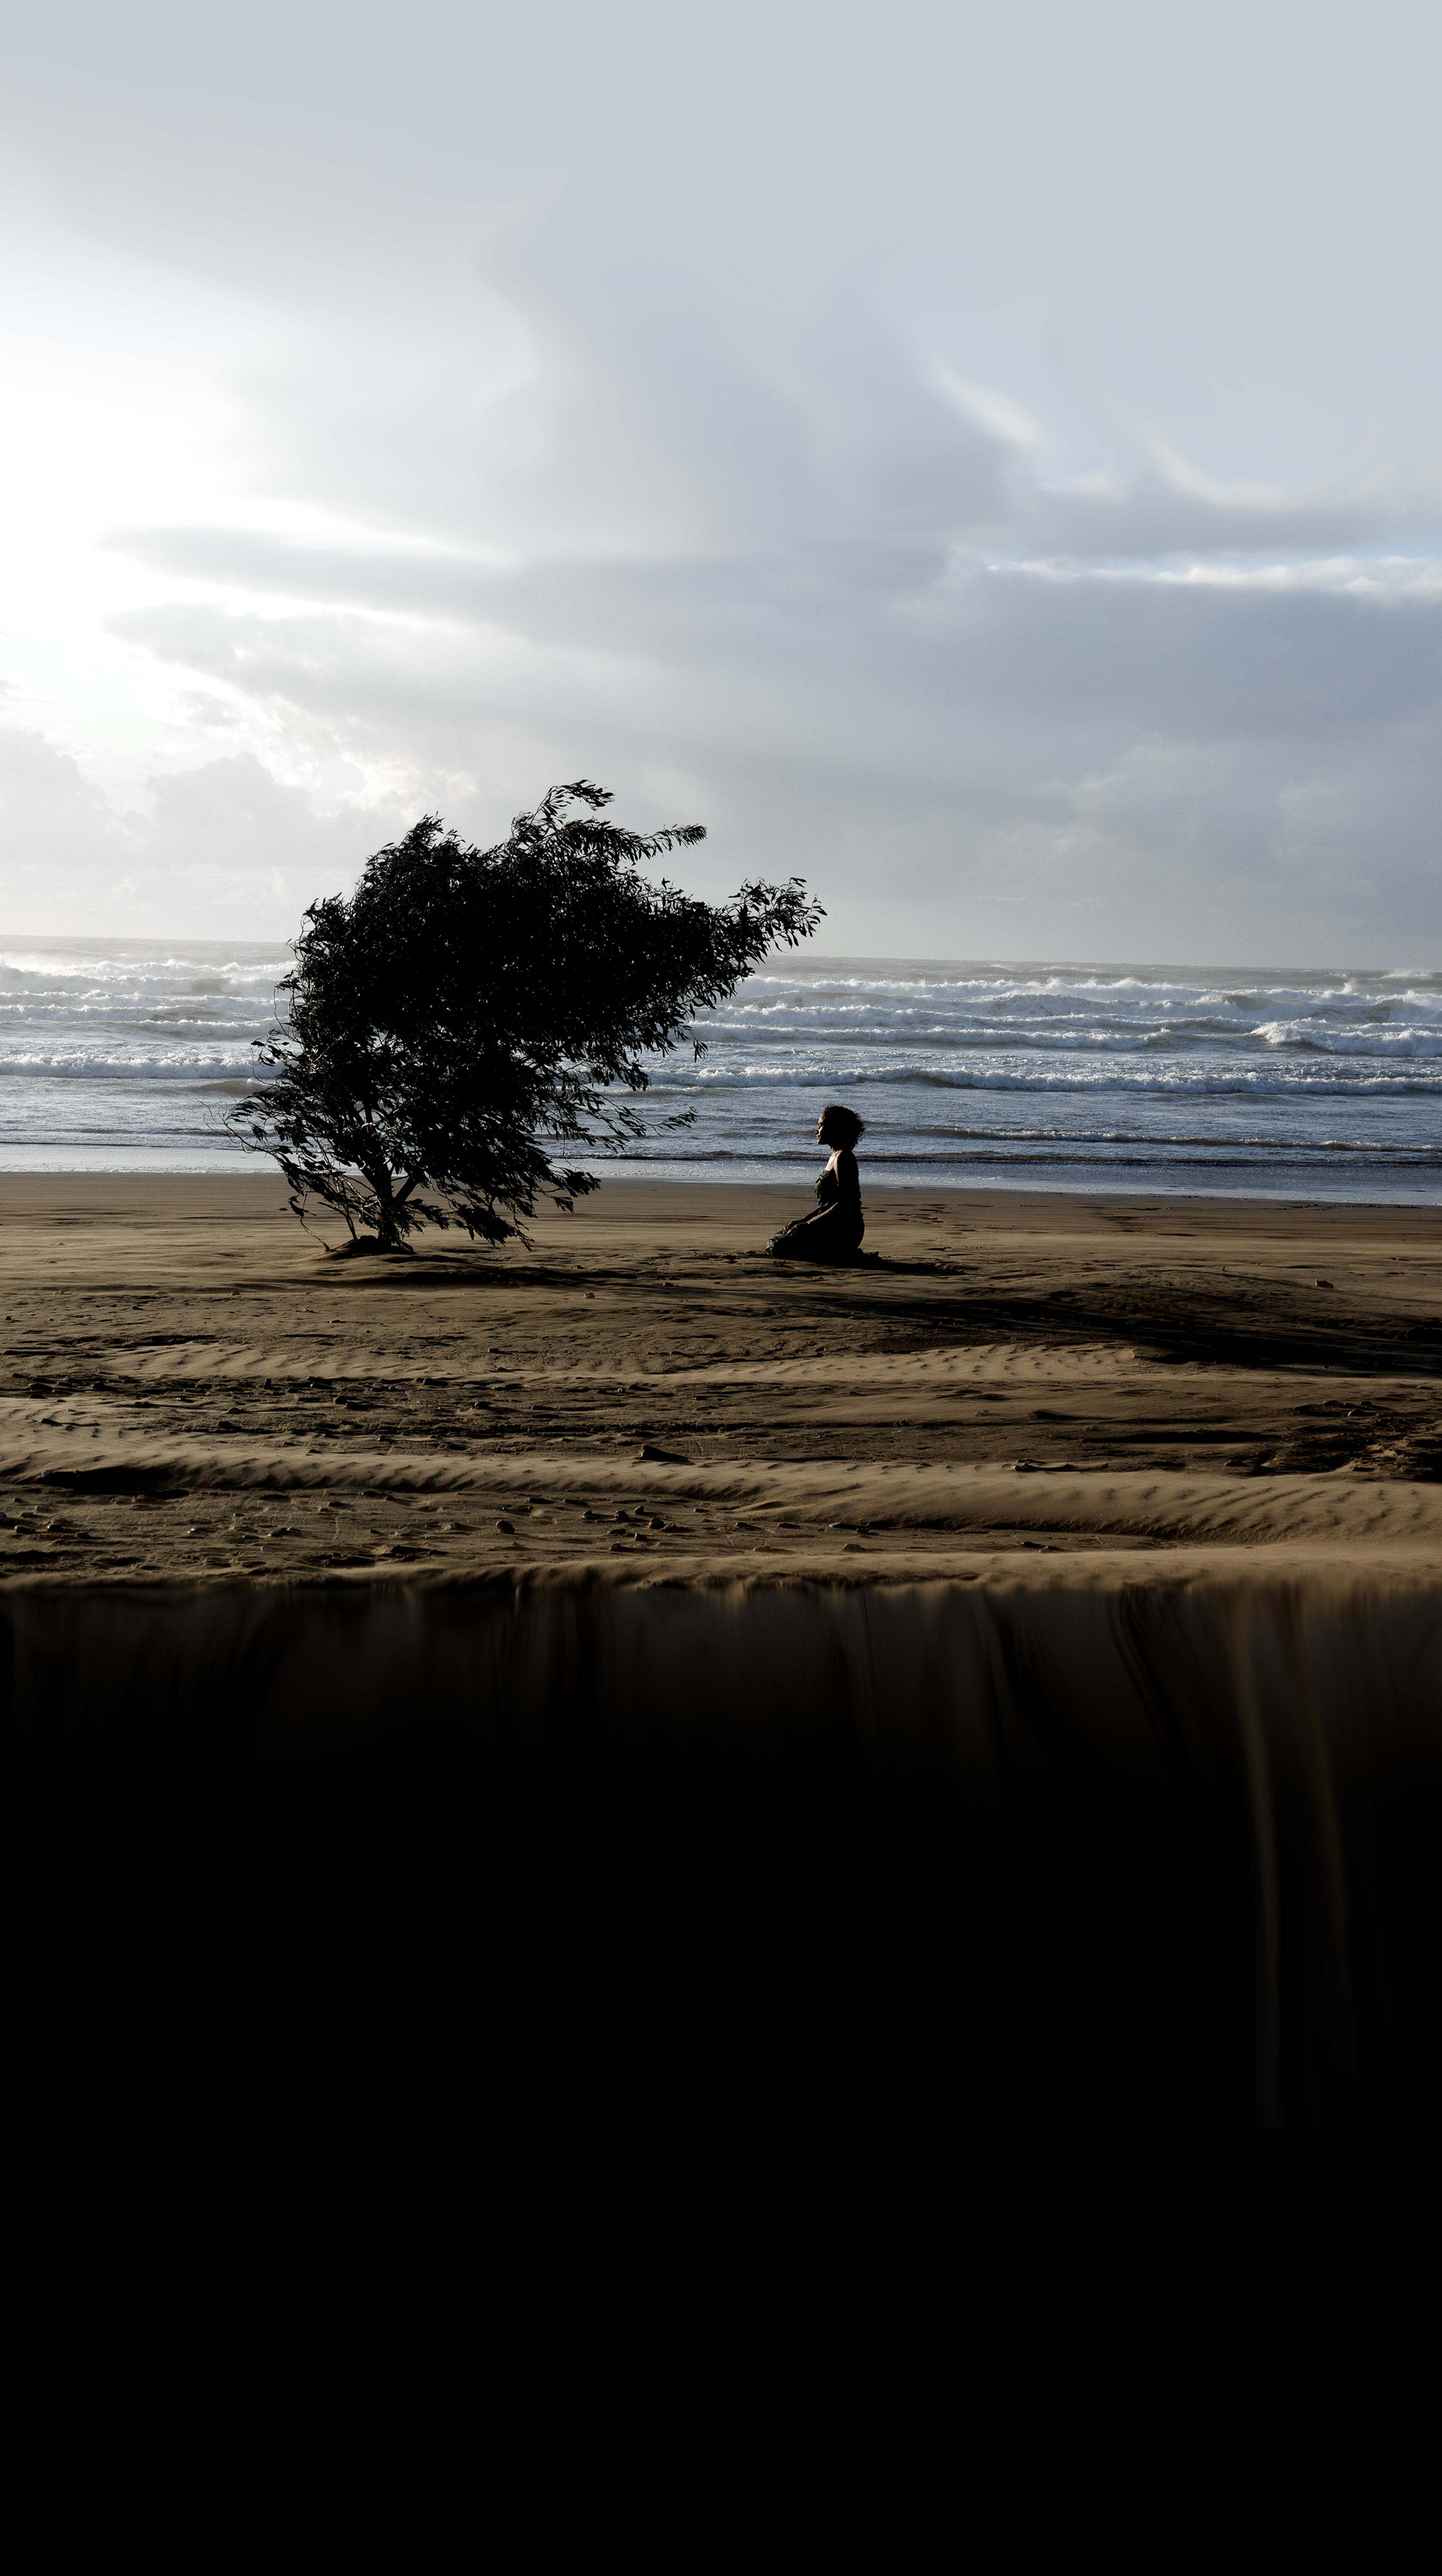 Tall photograph of a beach near sunset. The sky fades into the beach, which fades into darkness for the bottom third of the photograph. The focal point is a single tree in shadow with a figure kneeling below its branches.